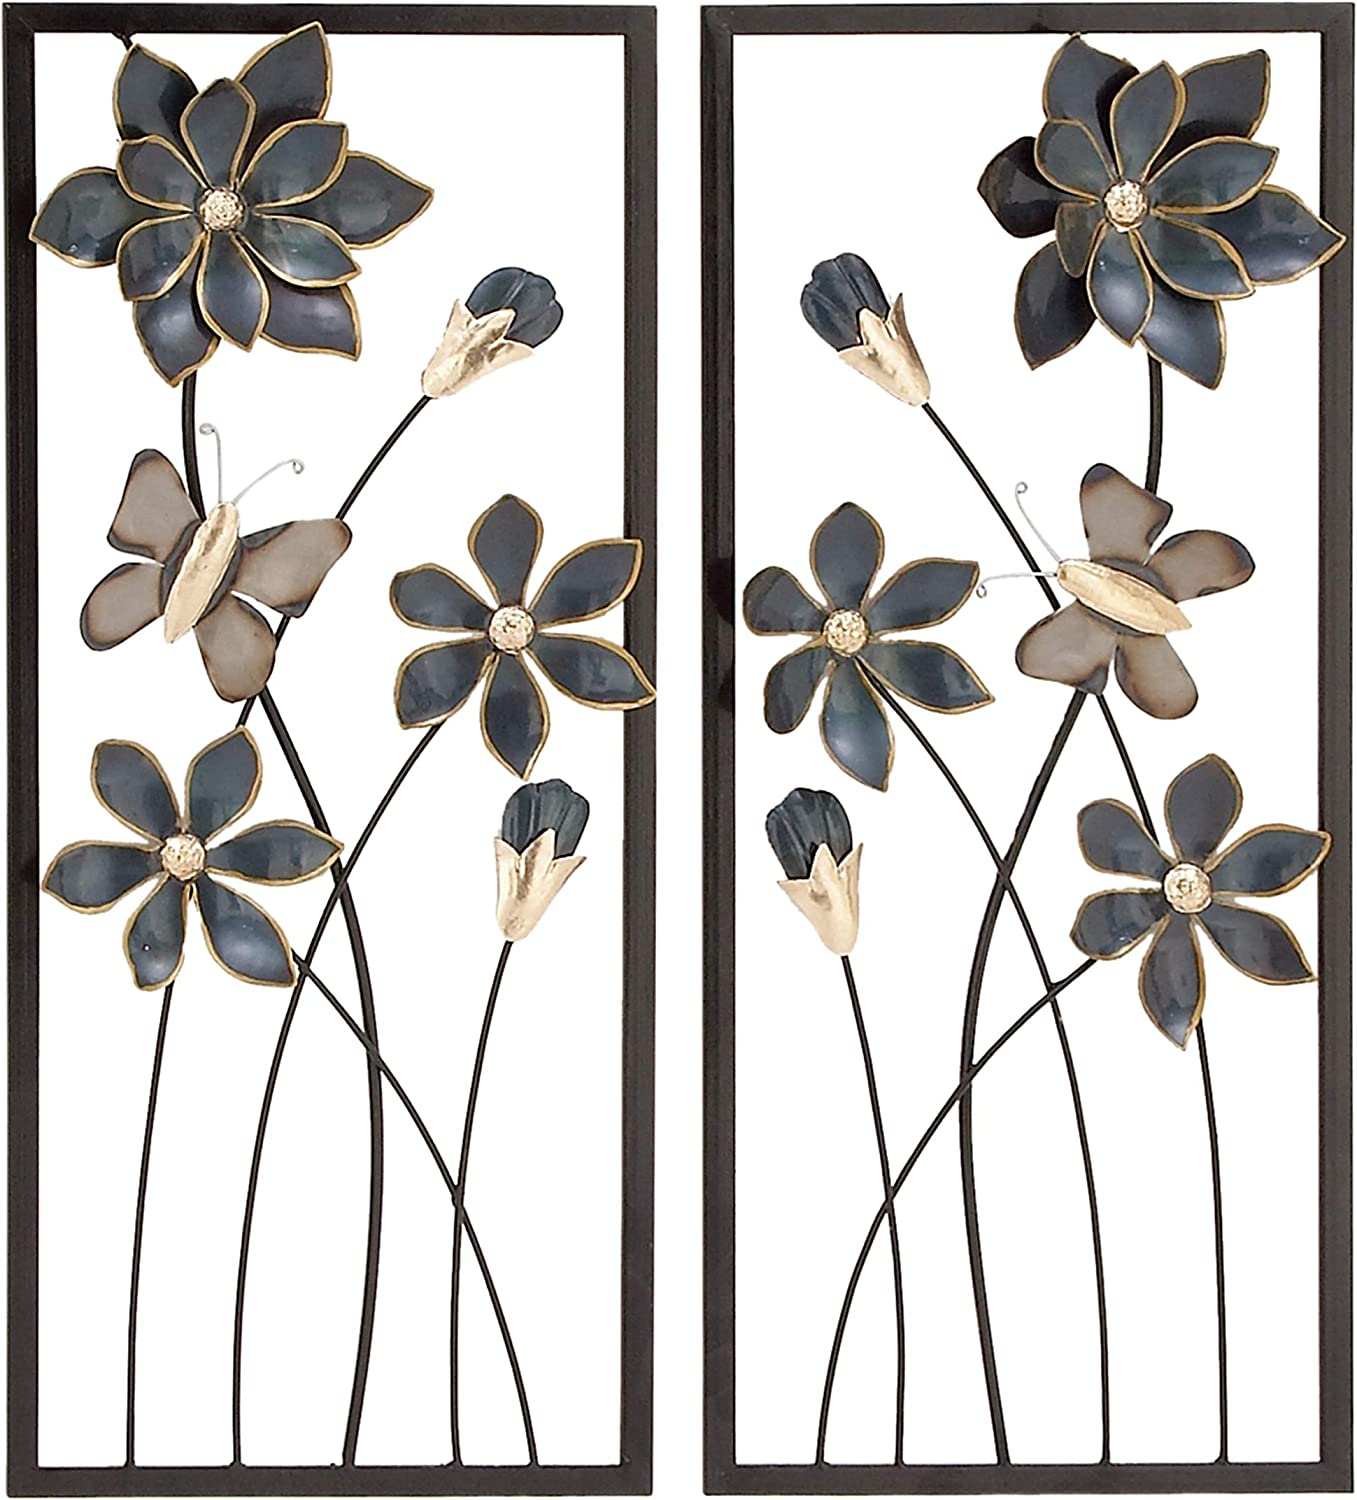 "Deco 79 53361 Metal Wall Decor (Set of 2), 12"" x 28"", Blue/Silver/Gold/Black"